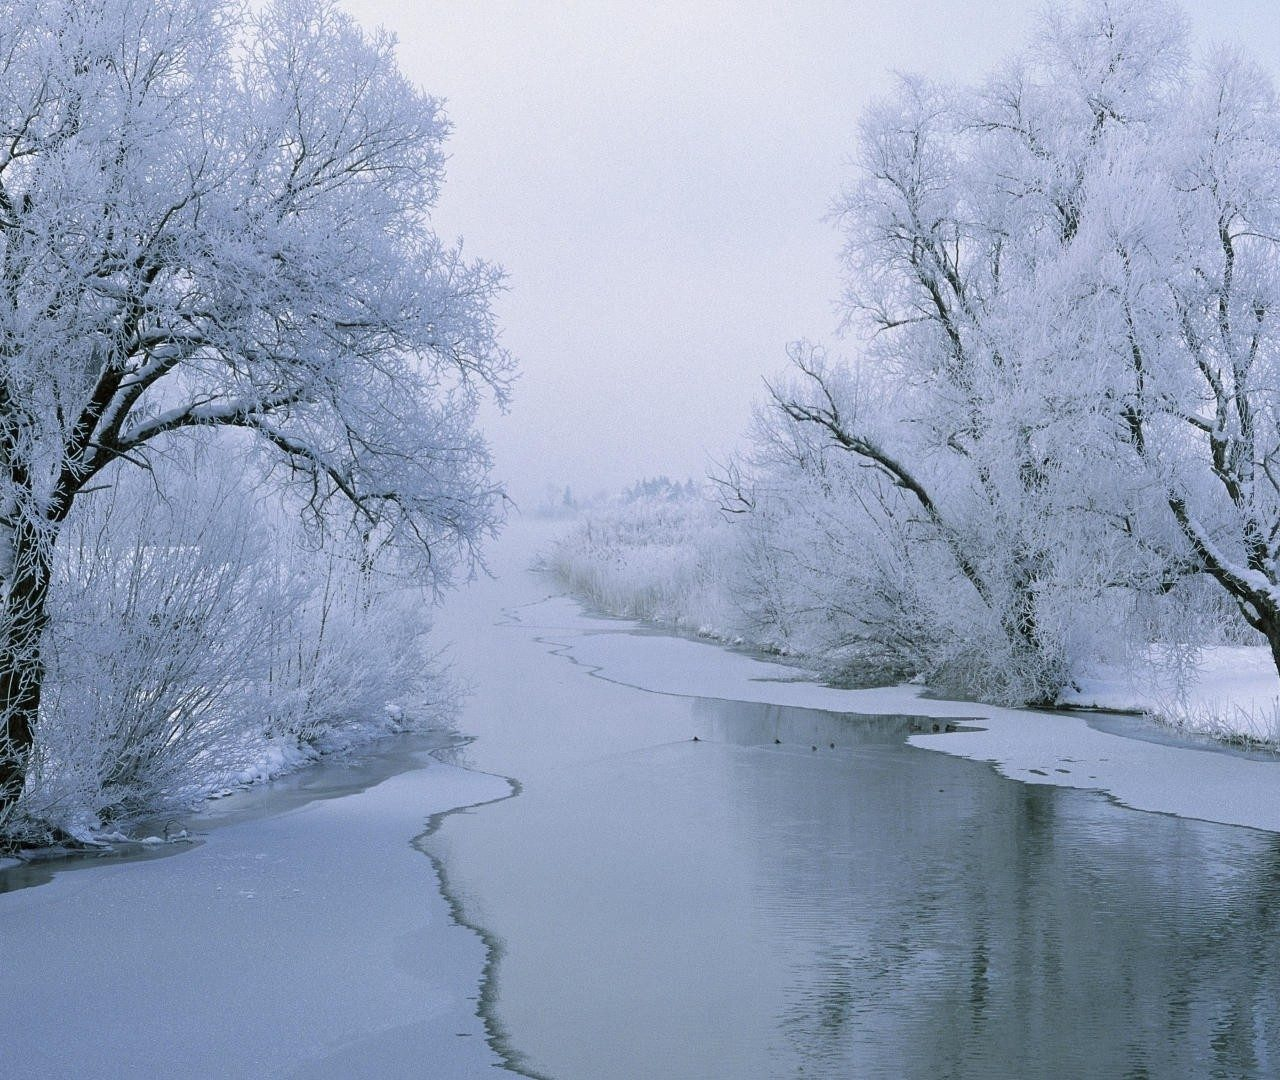 Hd 1600x900 Wallpaper: Winter Widescreen Wallpaper 1920×1080